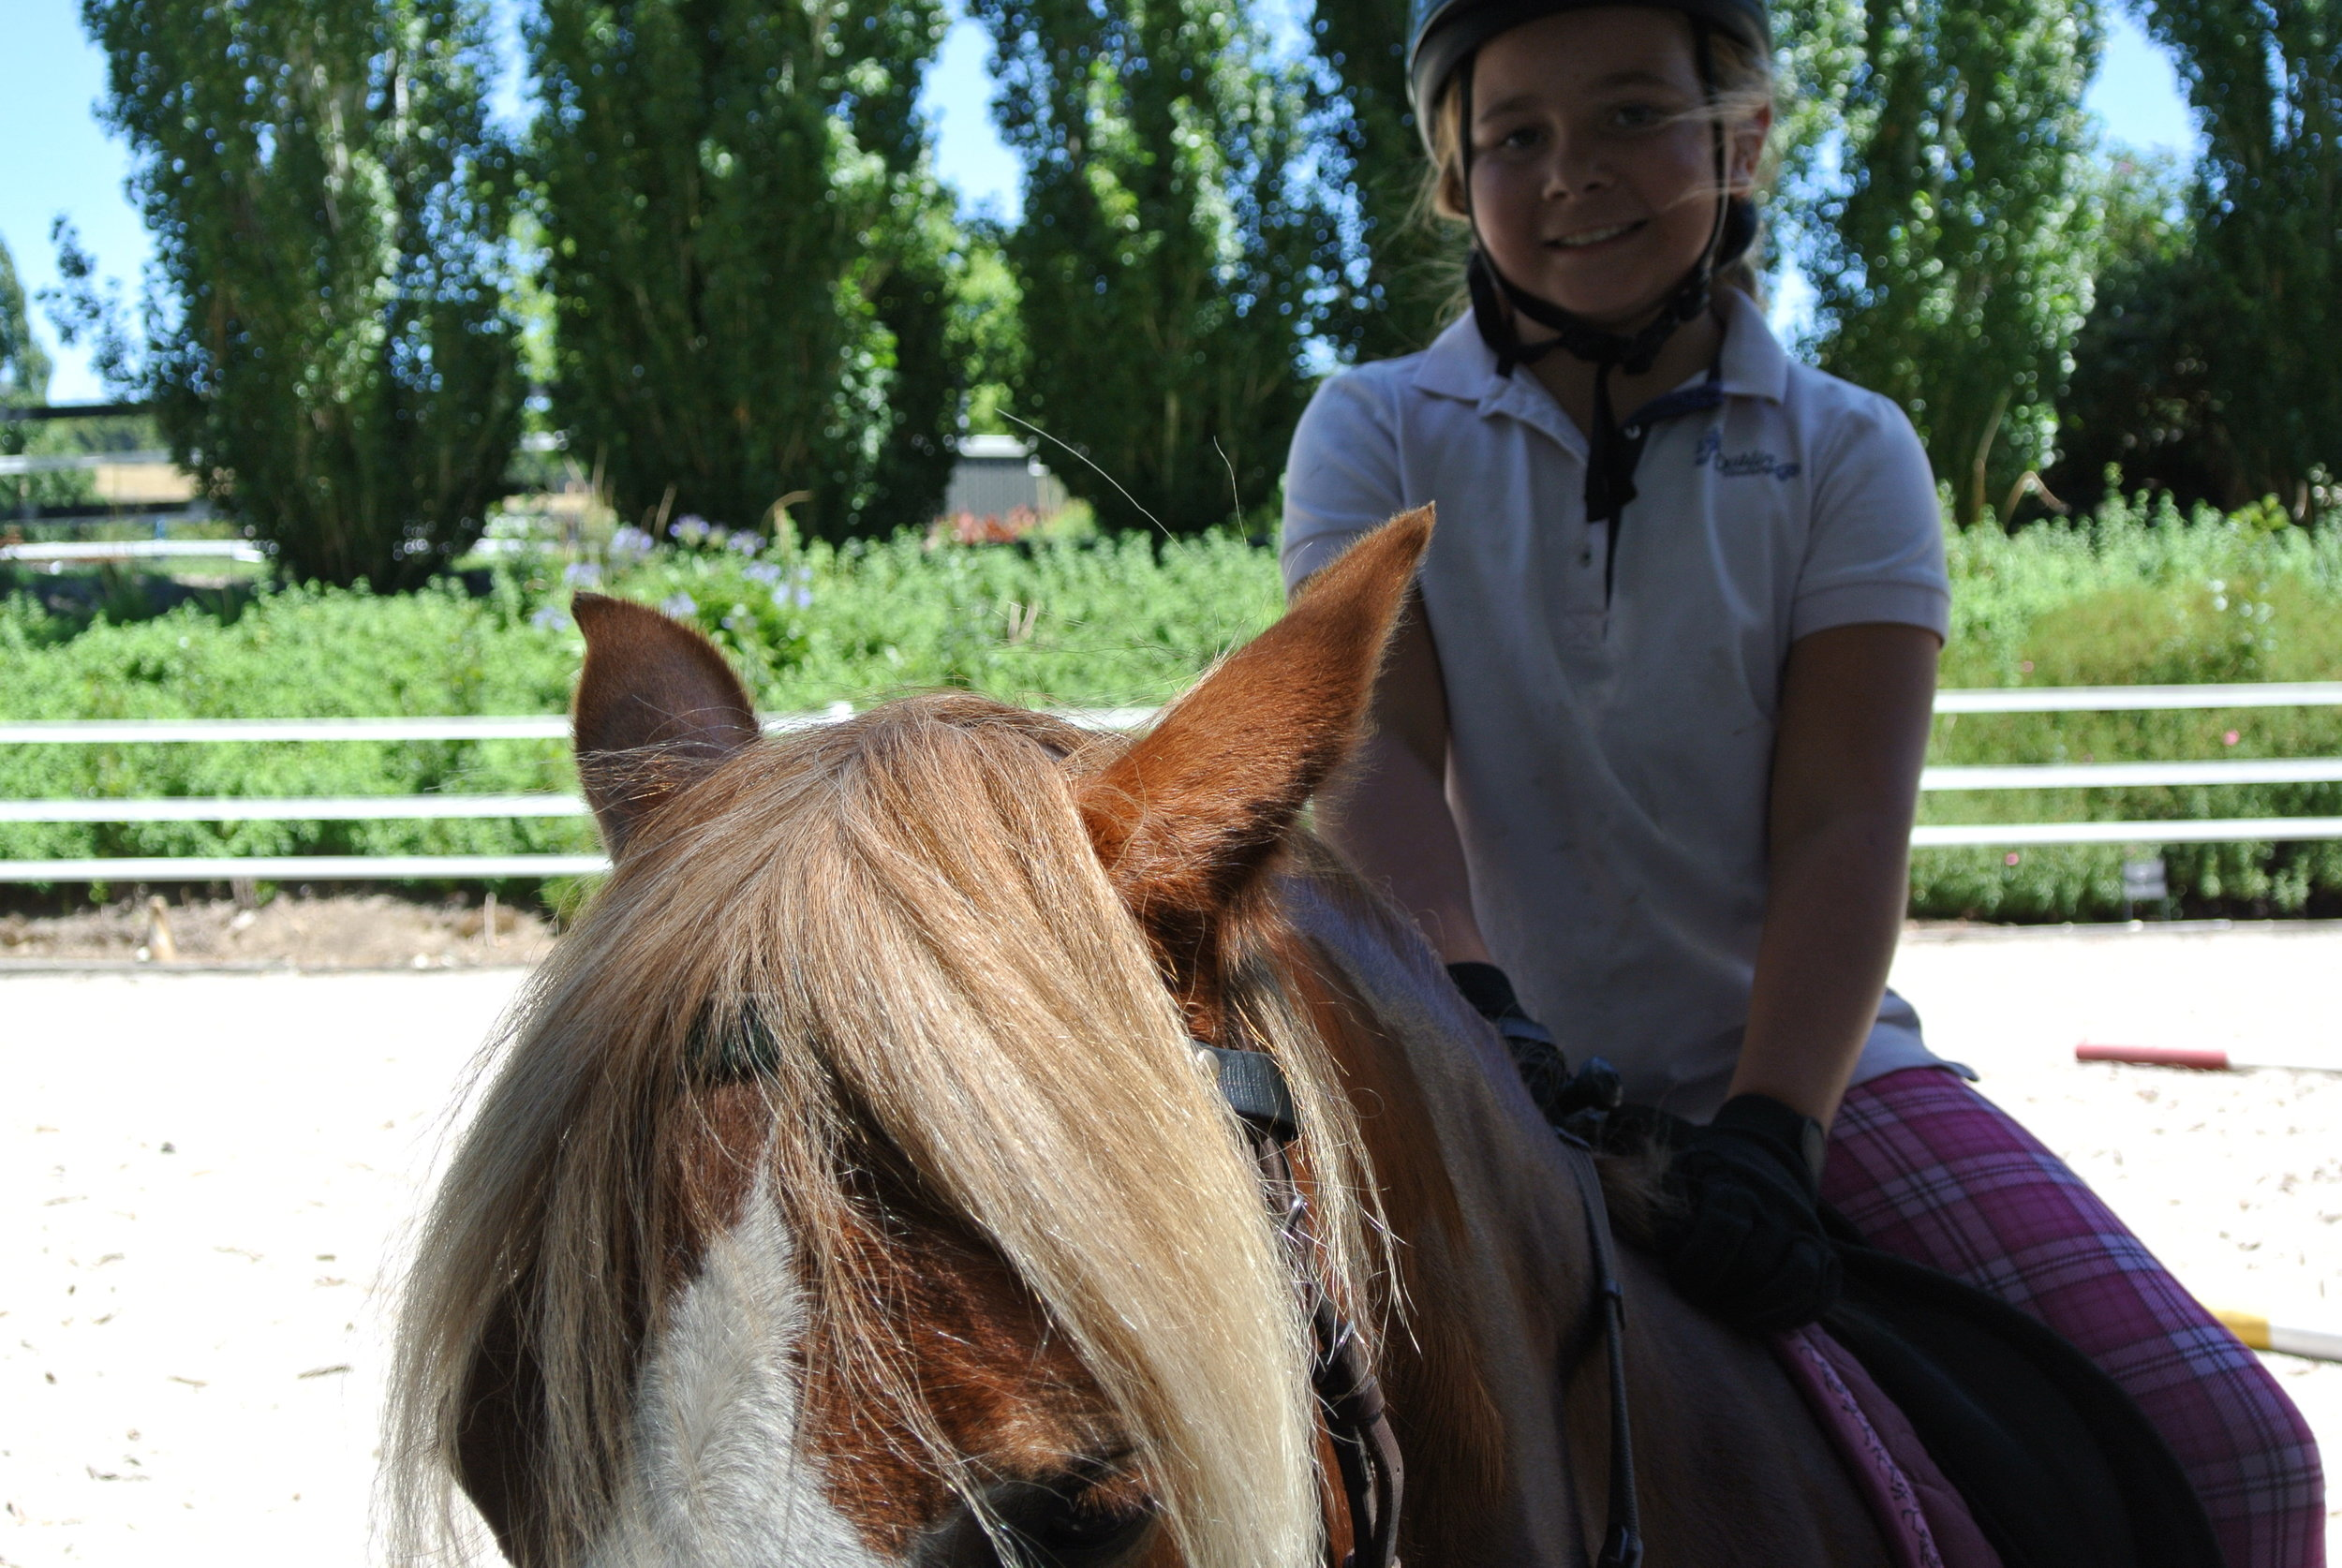 Riding Lessons - $65